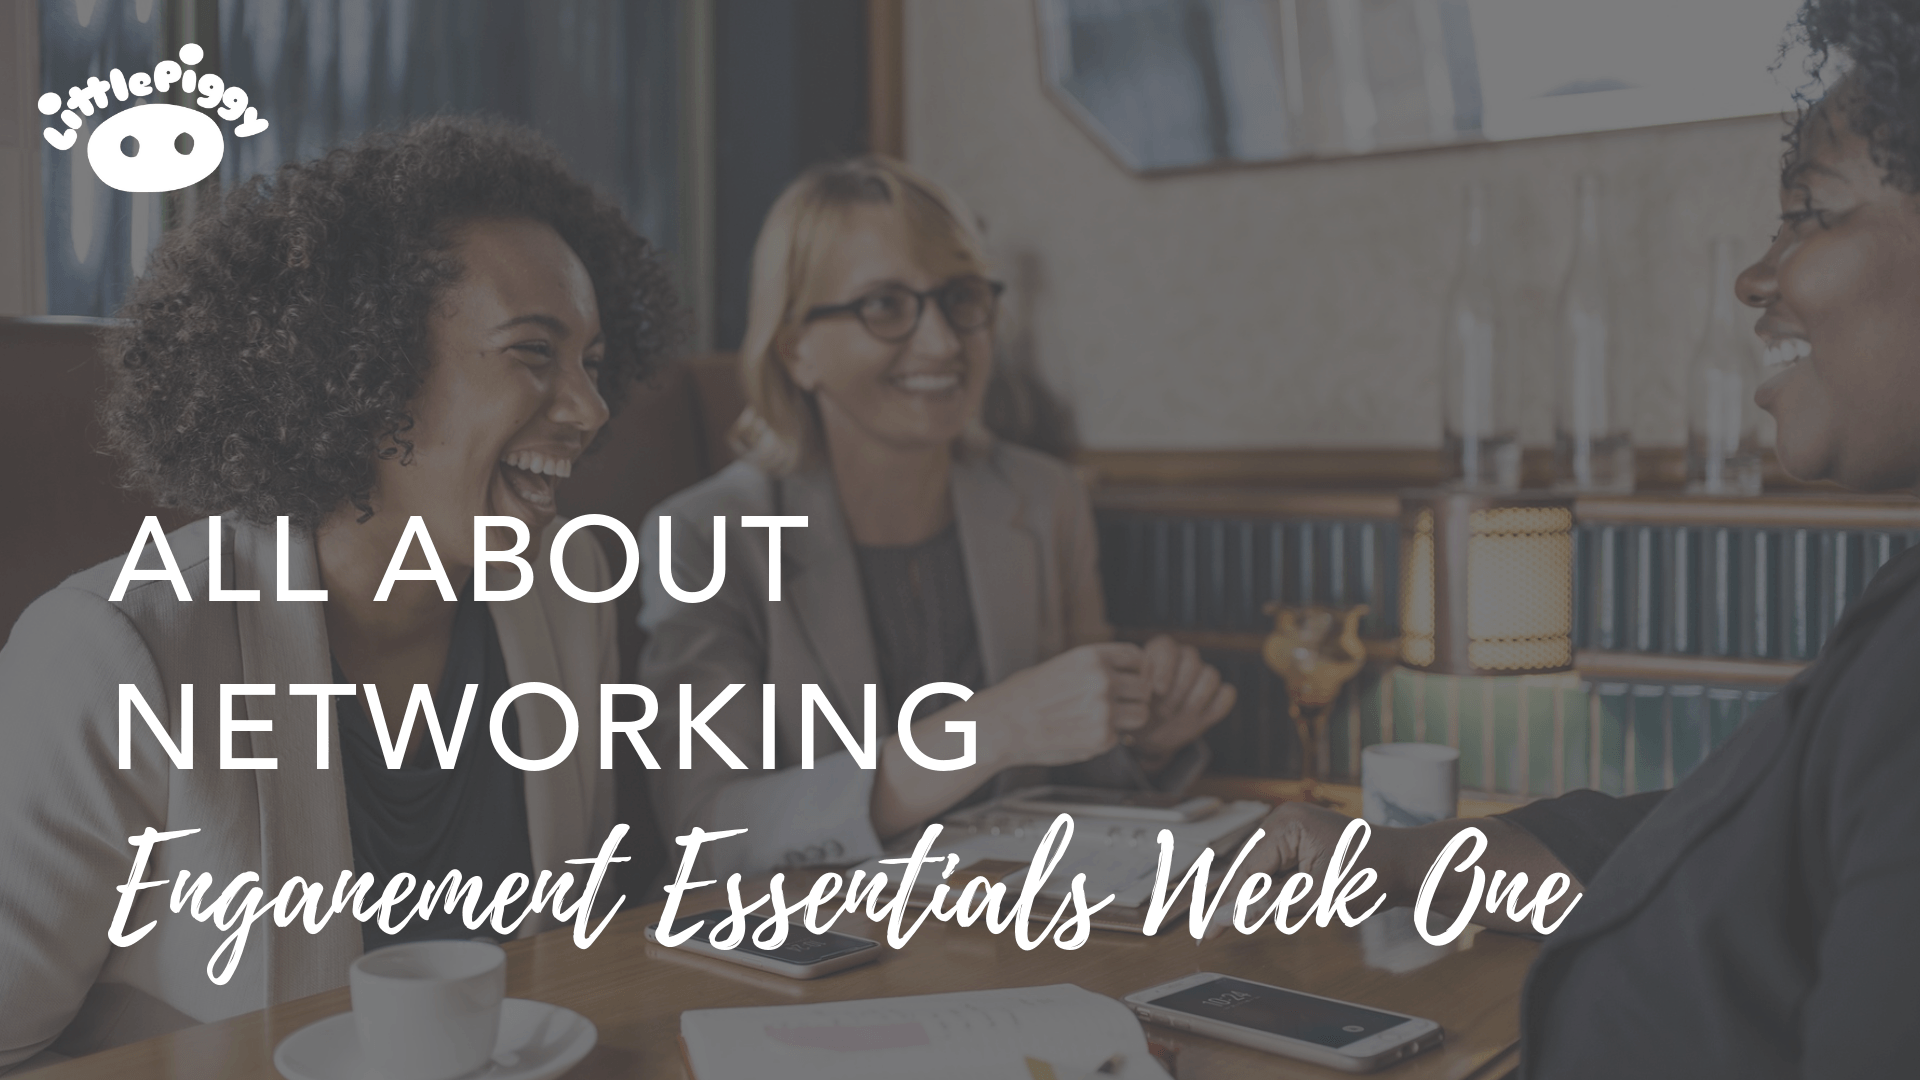 All About Networking Engagement Essentials, Week One | Kathy Ennis | LittlePiggy